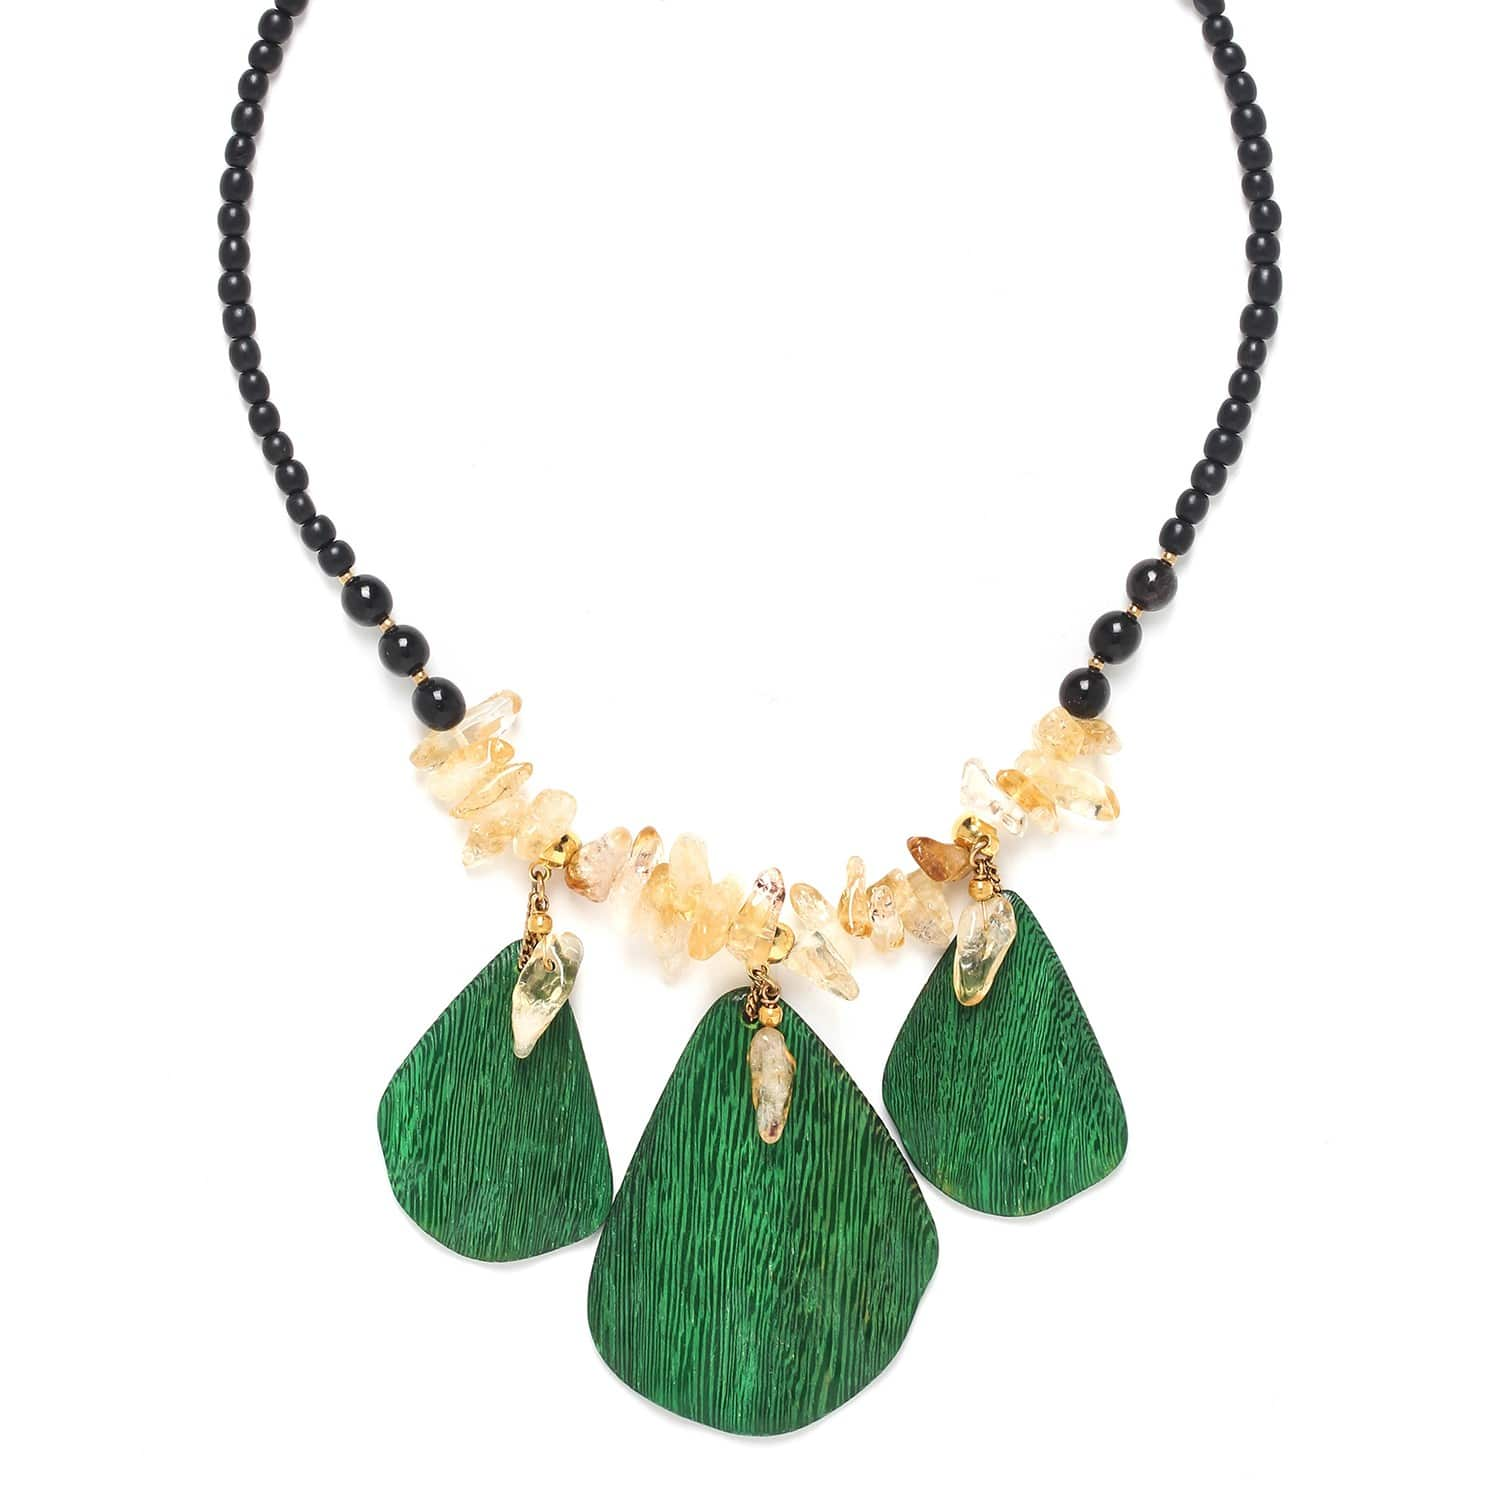 WILD LEAVES collier 3 feuilles